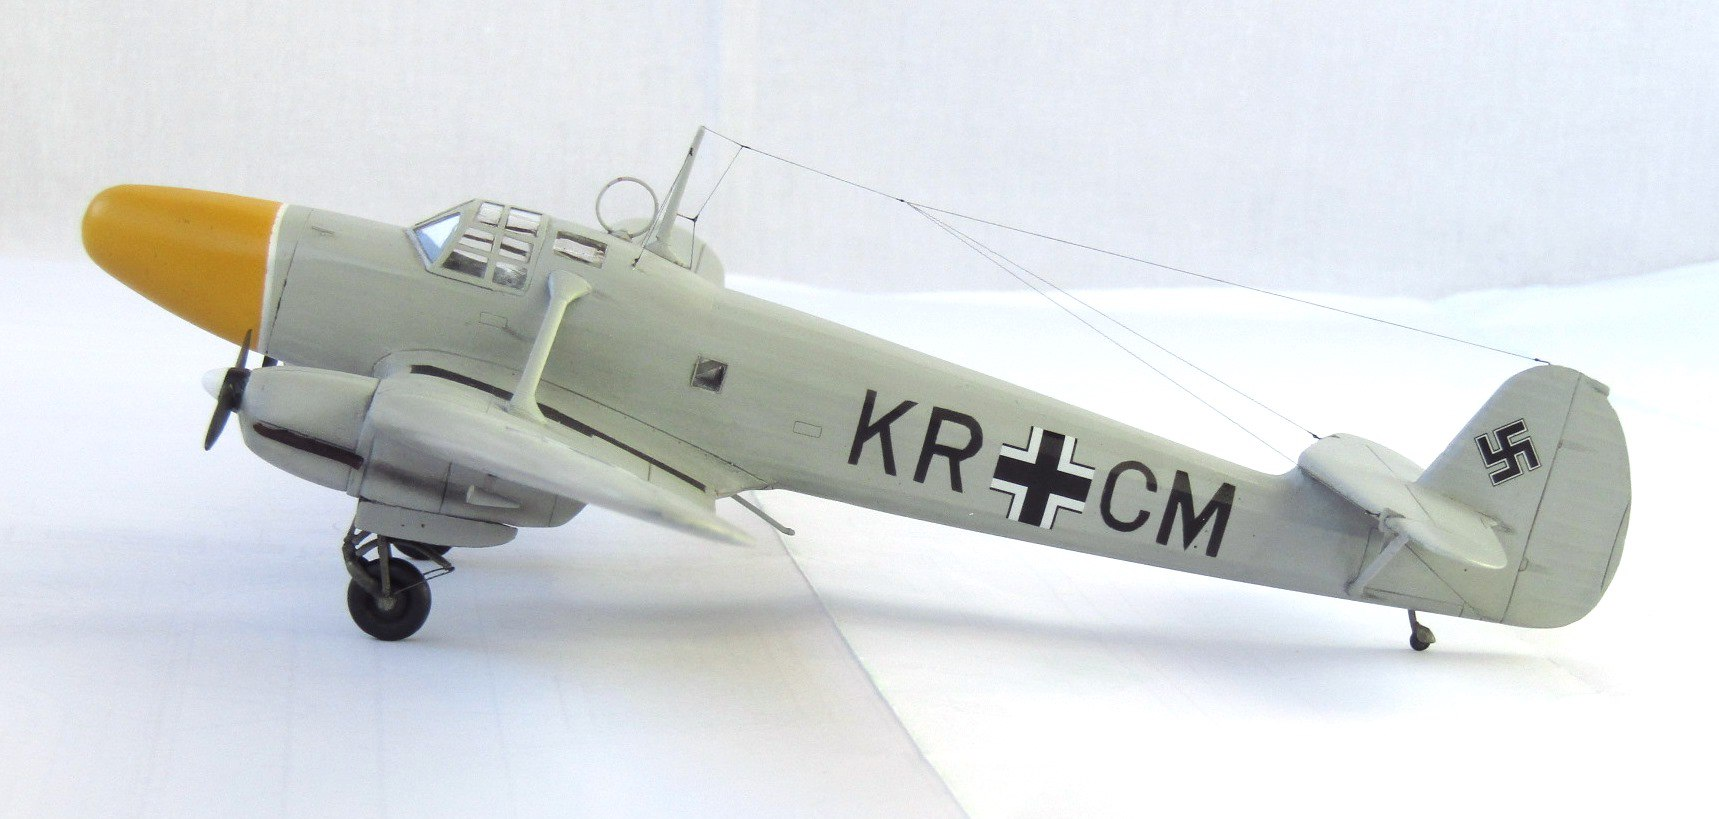 FW - 58C weihe 1/72 (Special Hobby) GcmQ0HubtMs